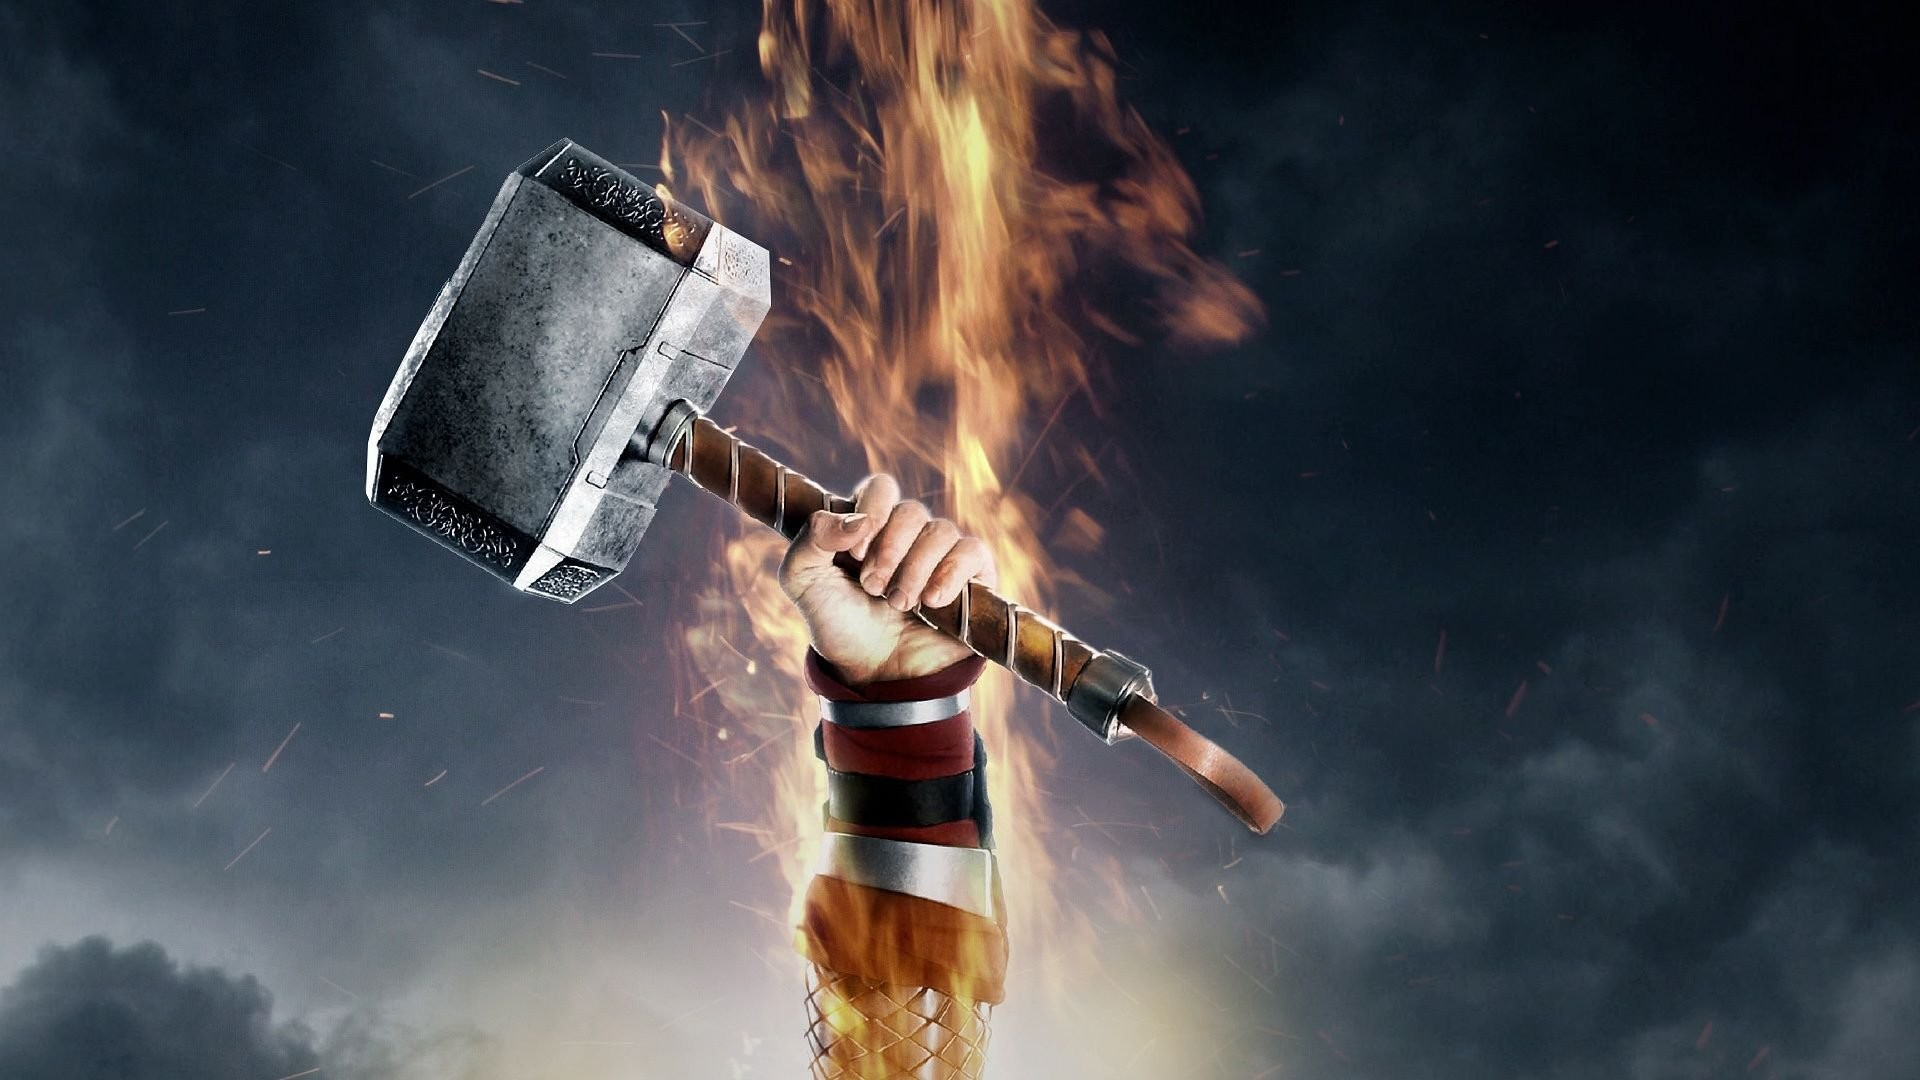 1920x1080 Search Results For Thor Hammer Hd Wallpapers Adorable